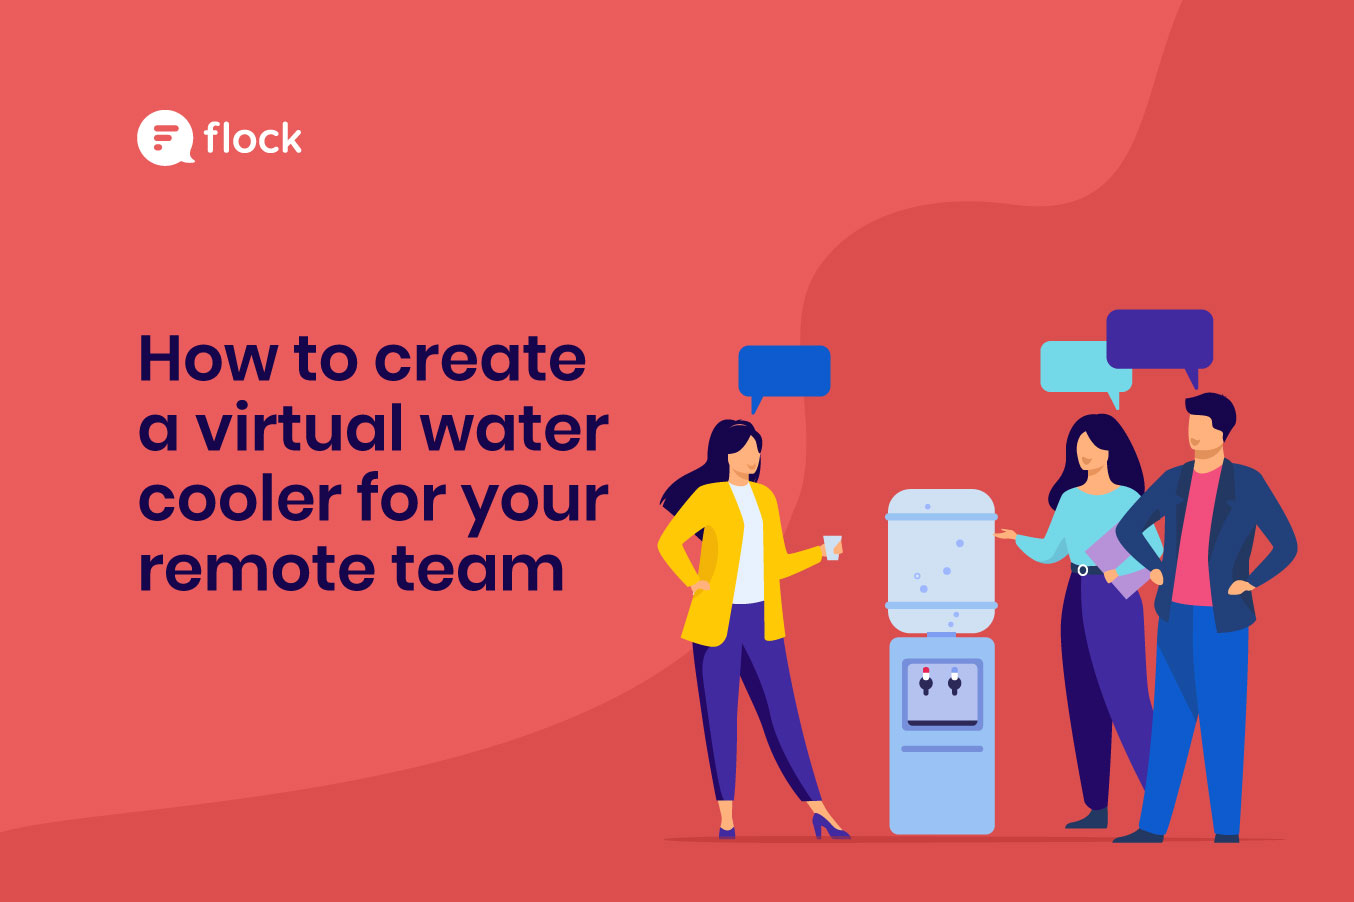 Creating virtual water coolers for your remote team